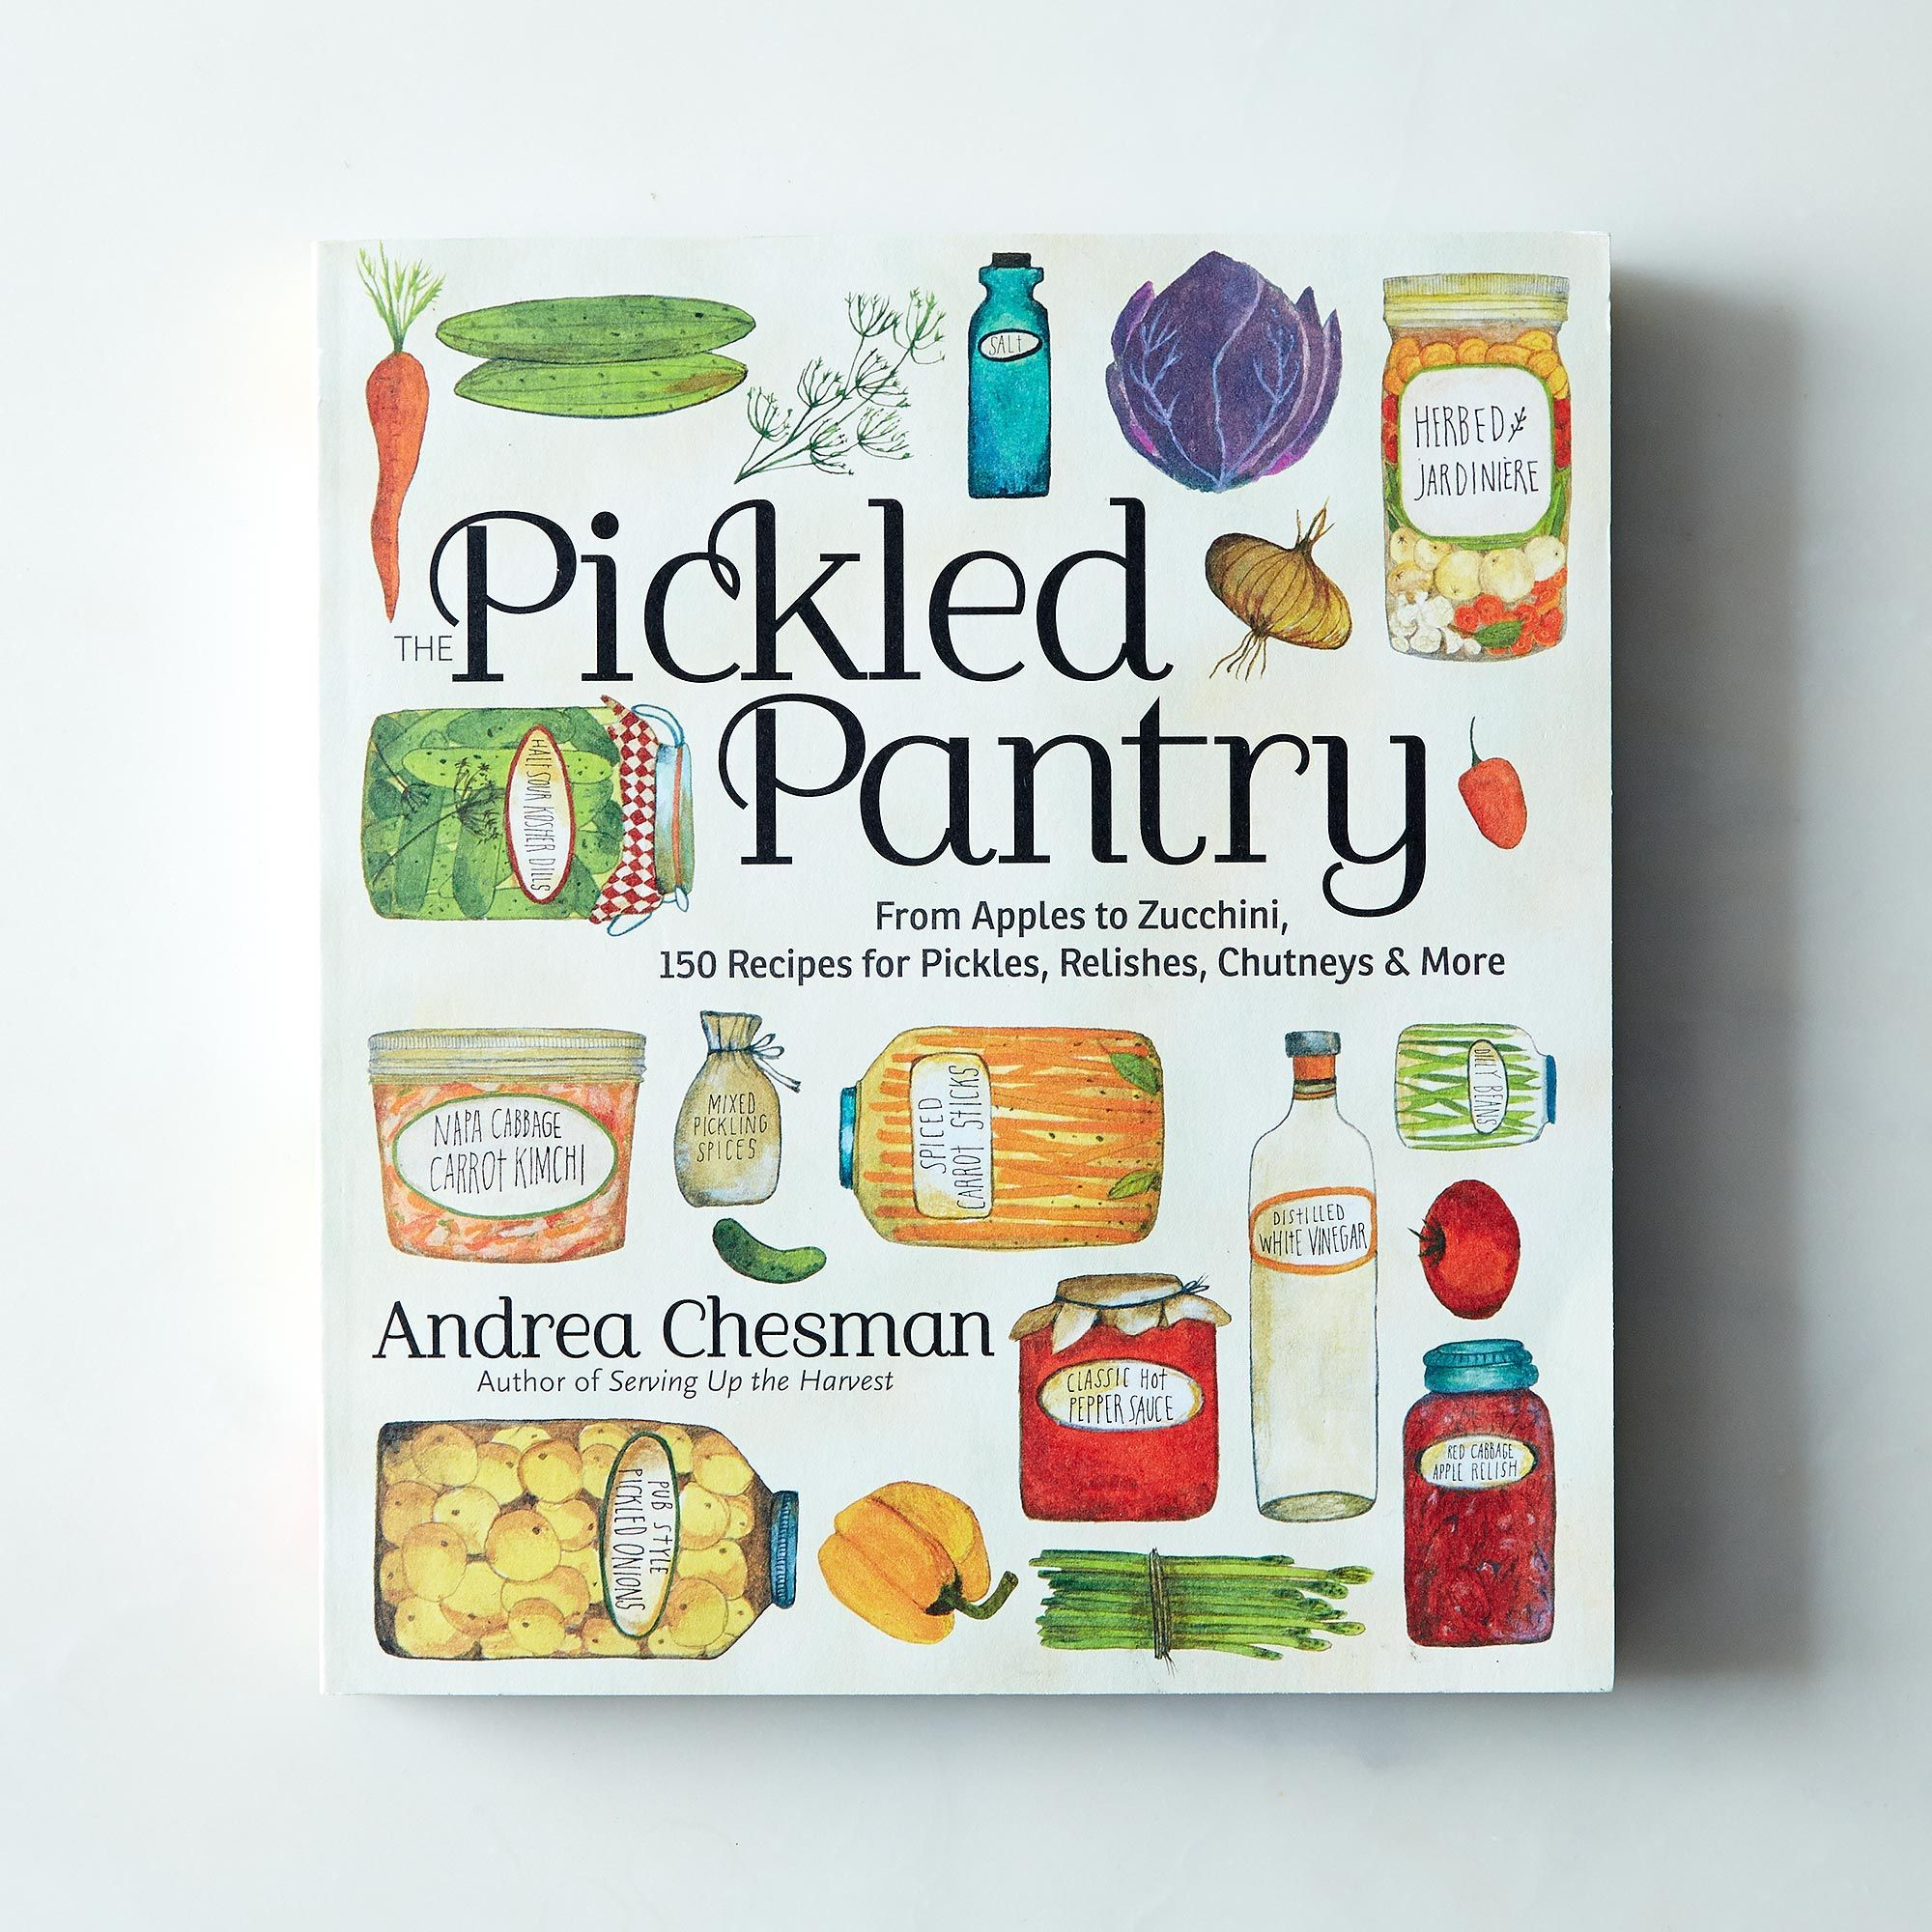 64e0da78 e629 4e40 be40 d799b268e862  2014 0609 mountain feed farm the pickled pantry 008